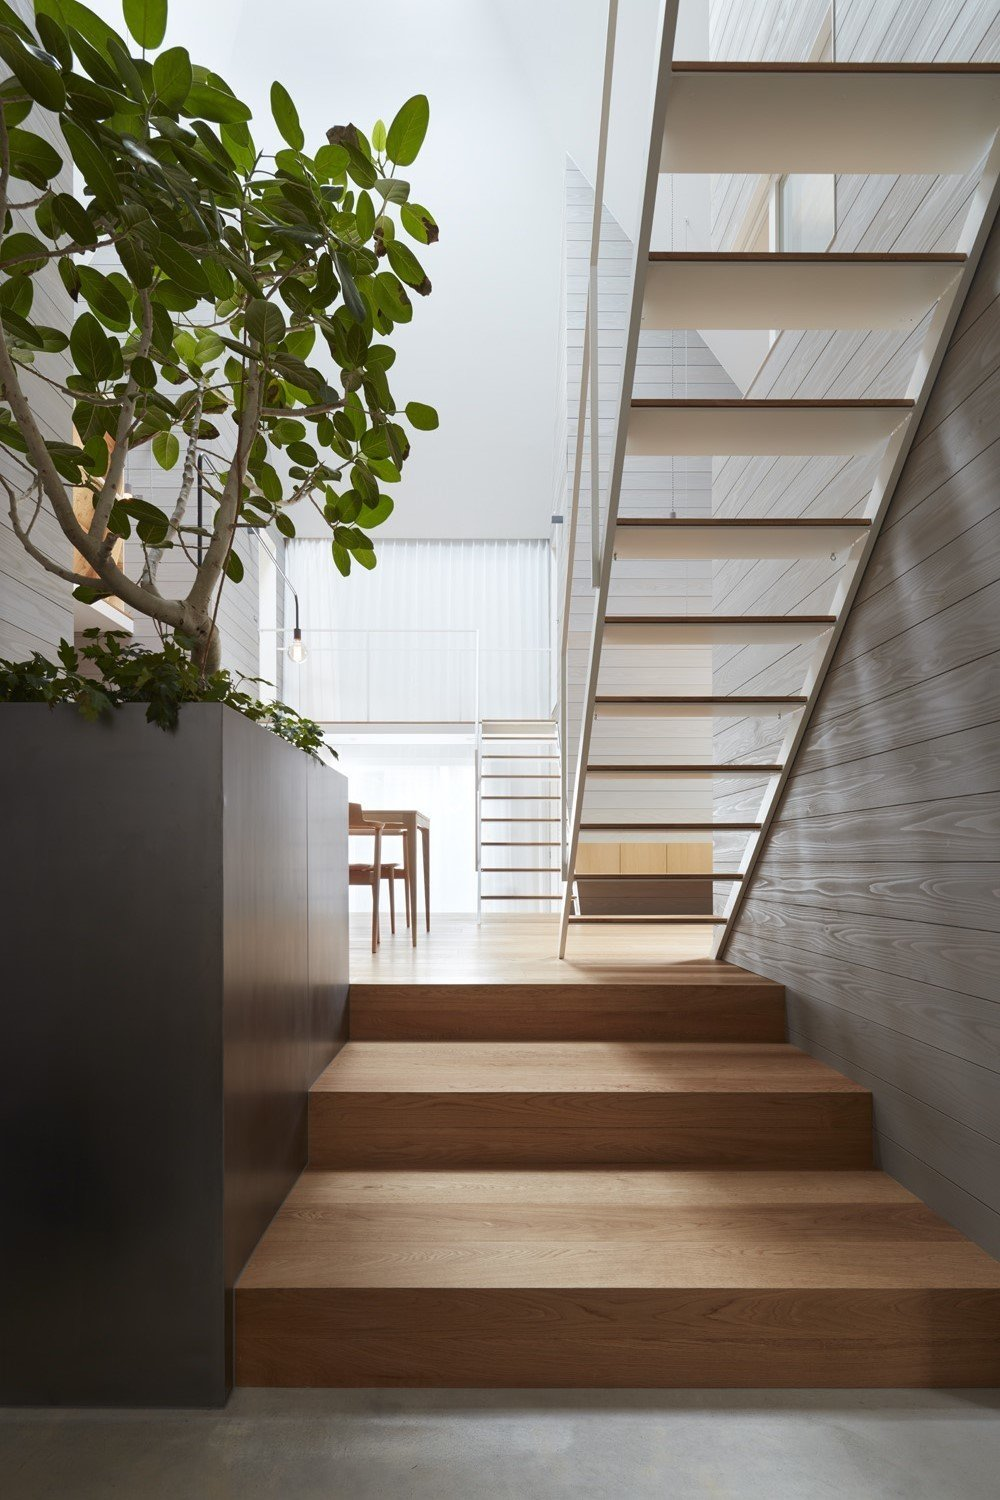 Photo 2 of 8 in House in Iwakura by Airhouse